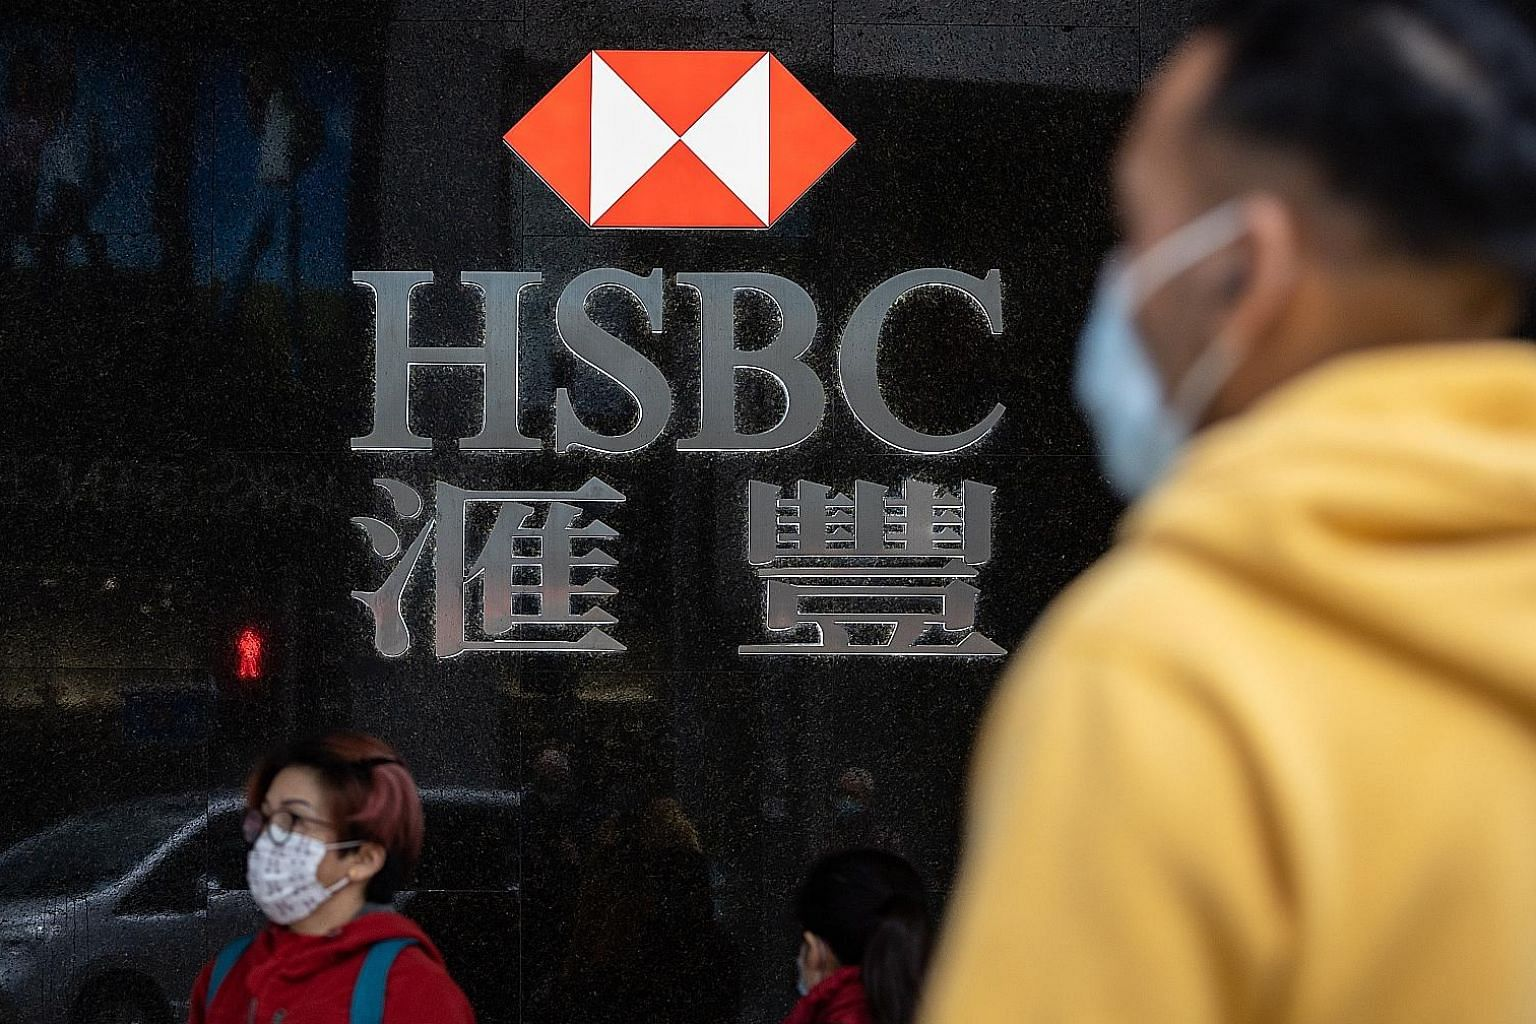 HSBC believes the negative impact on China sparked by the coronavirus outbreak will be fleeting, though the bank faces challenges in the short term at least. While it said the Hong Kong business showed resilience in the fourth quarter after months of